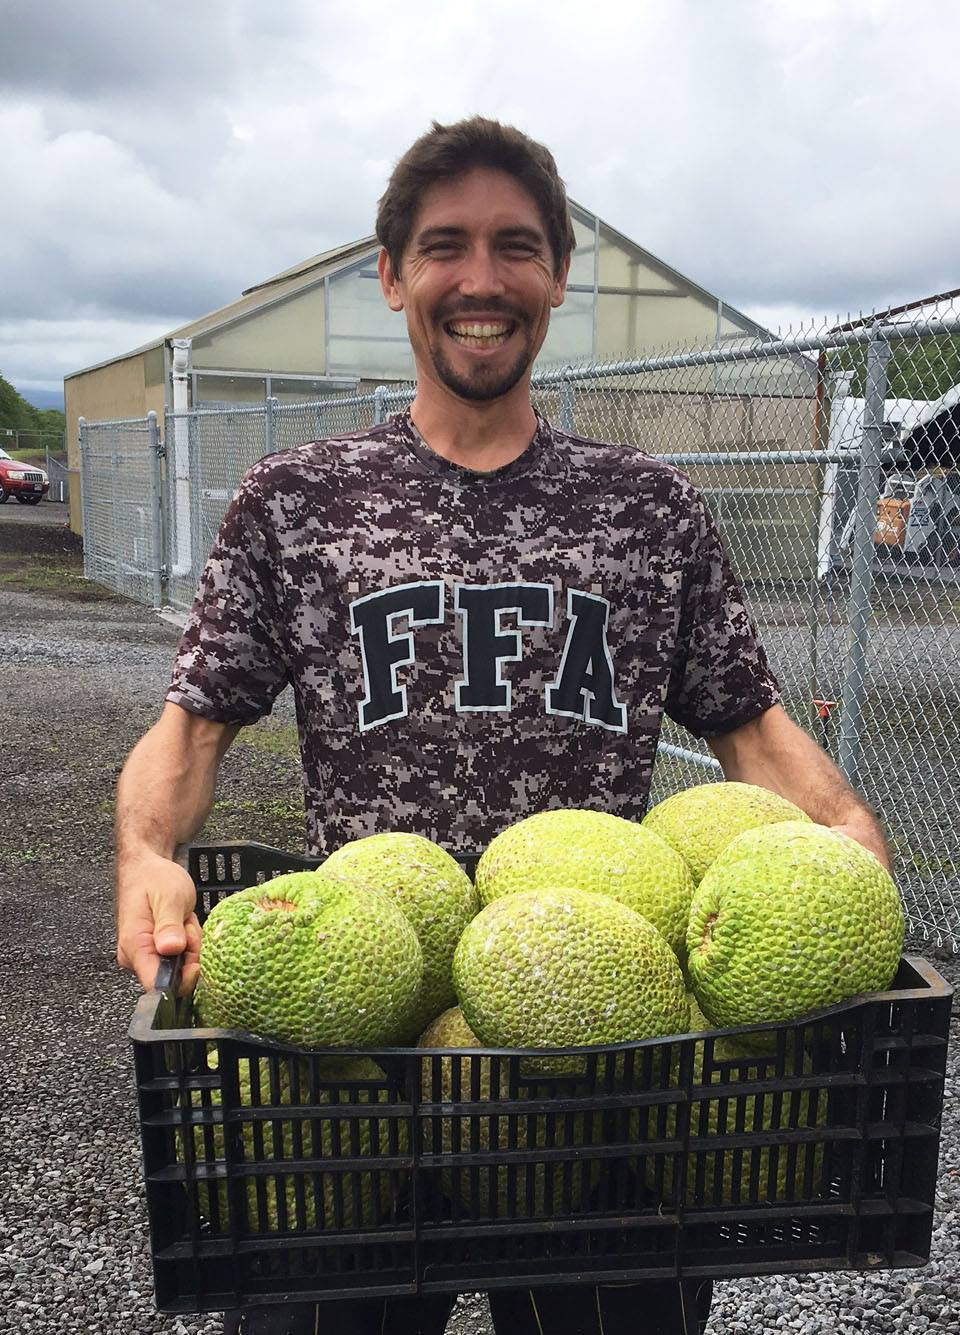 Hawaii Ulu Co-op member holding tray of harvested breadfruit